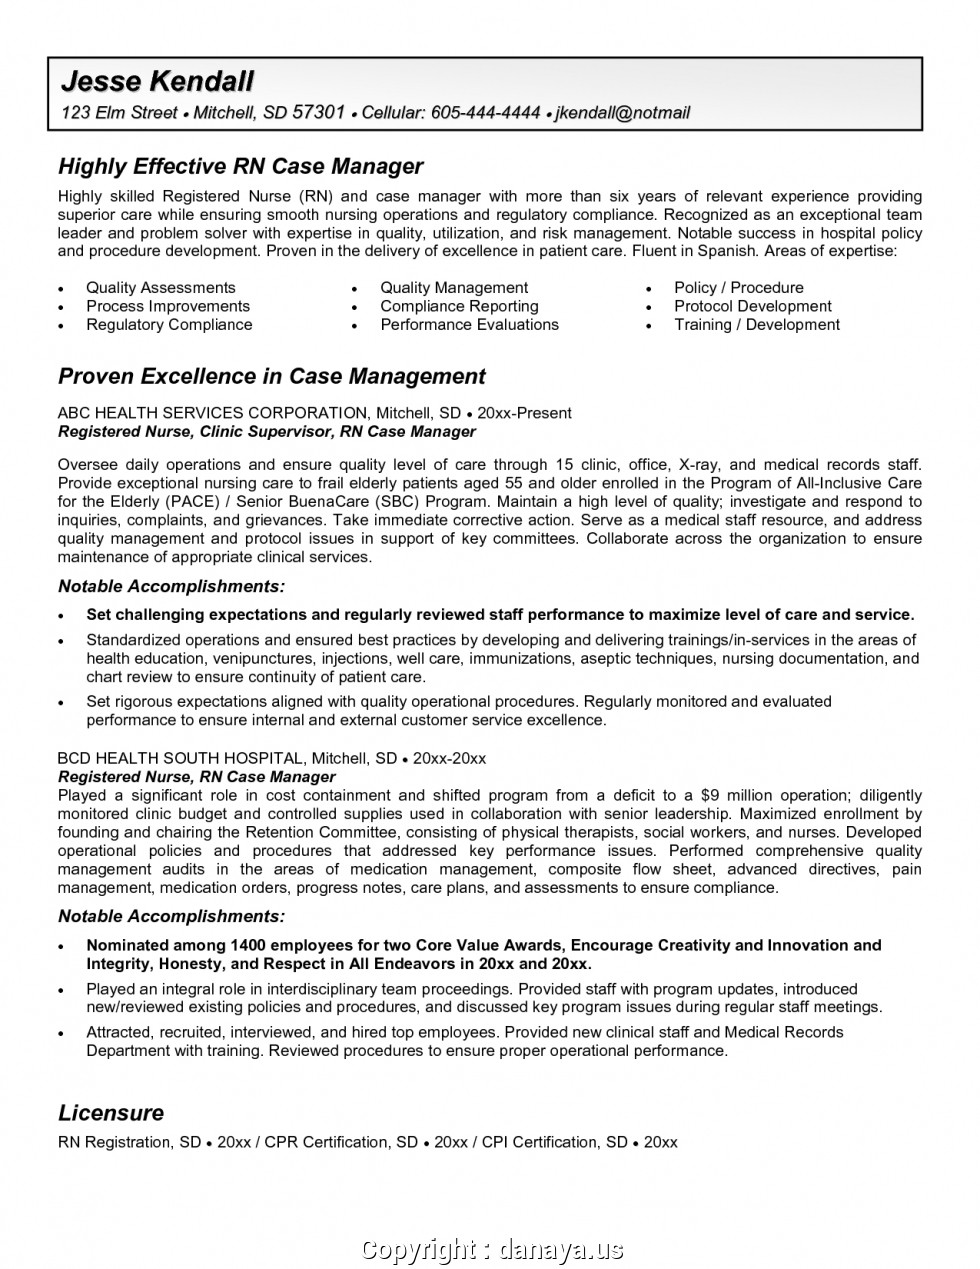 Sample Resume For Rn Case Manager